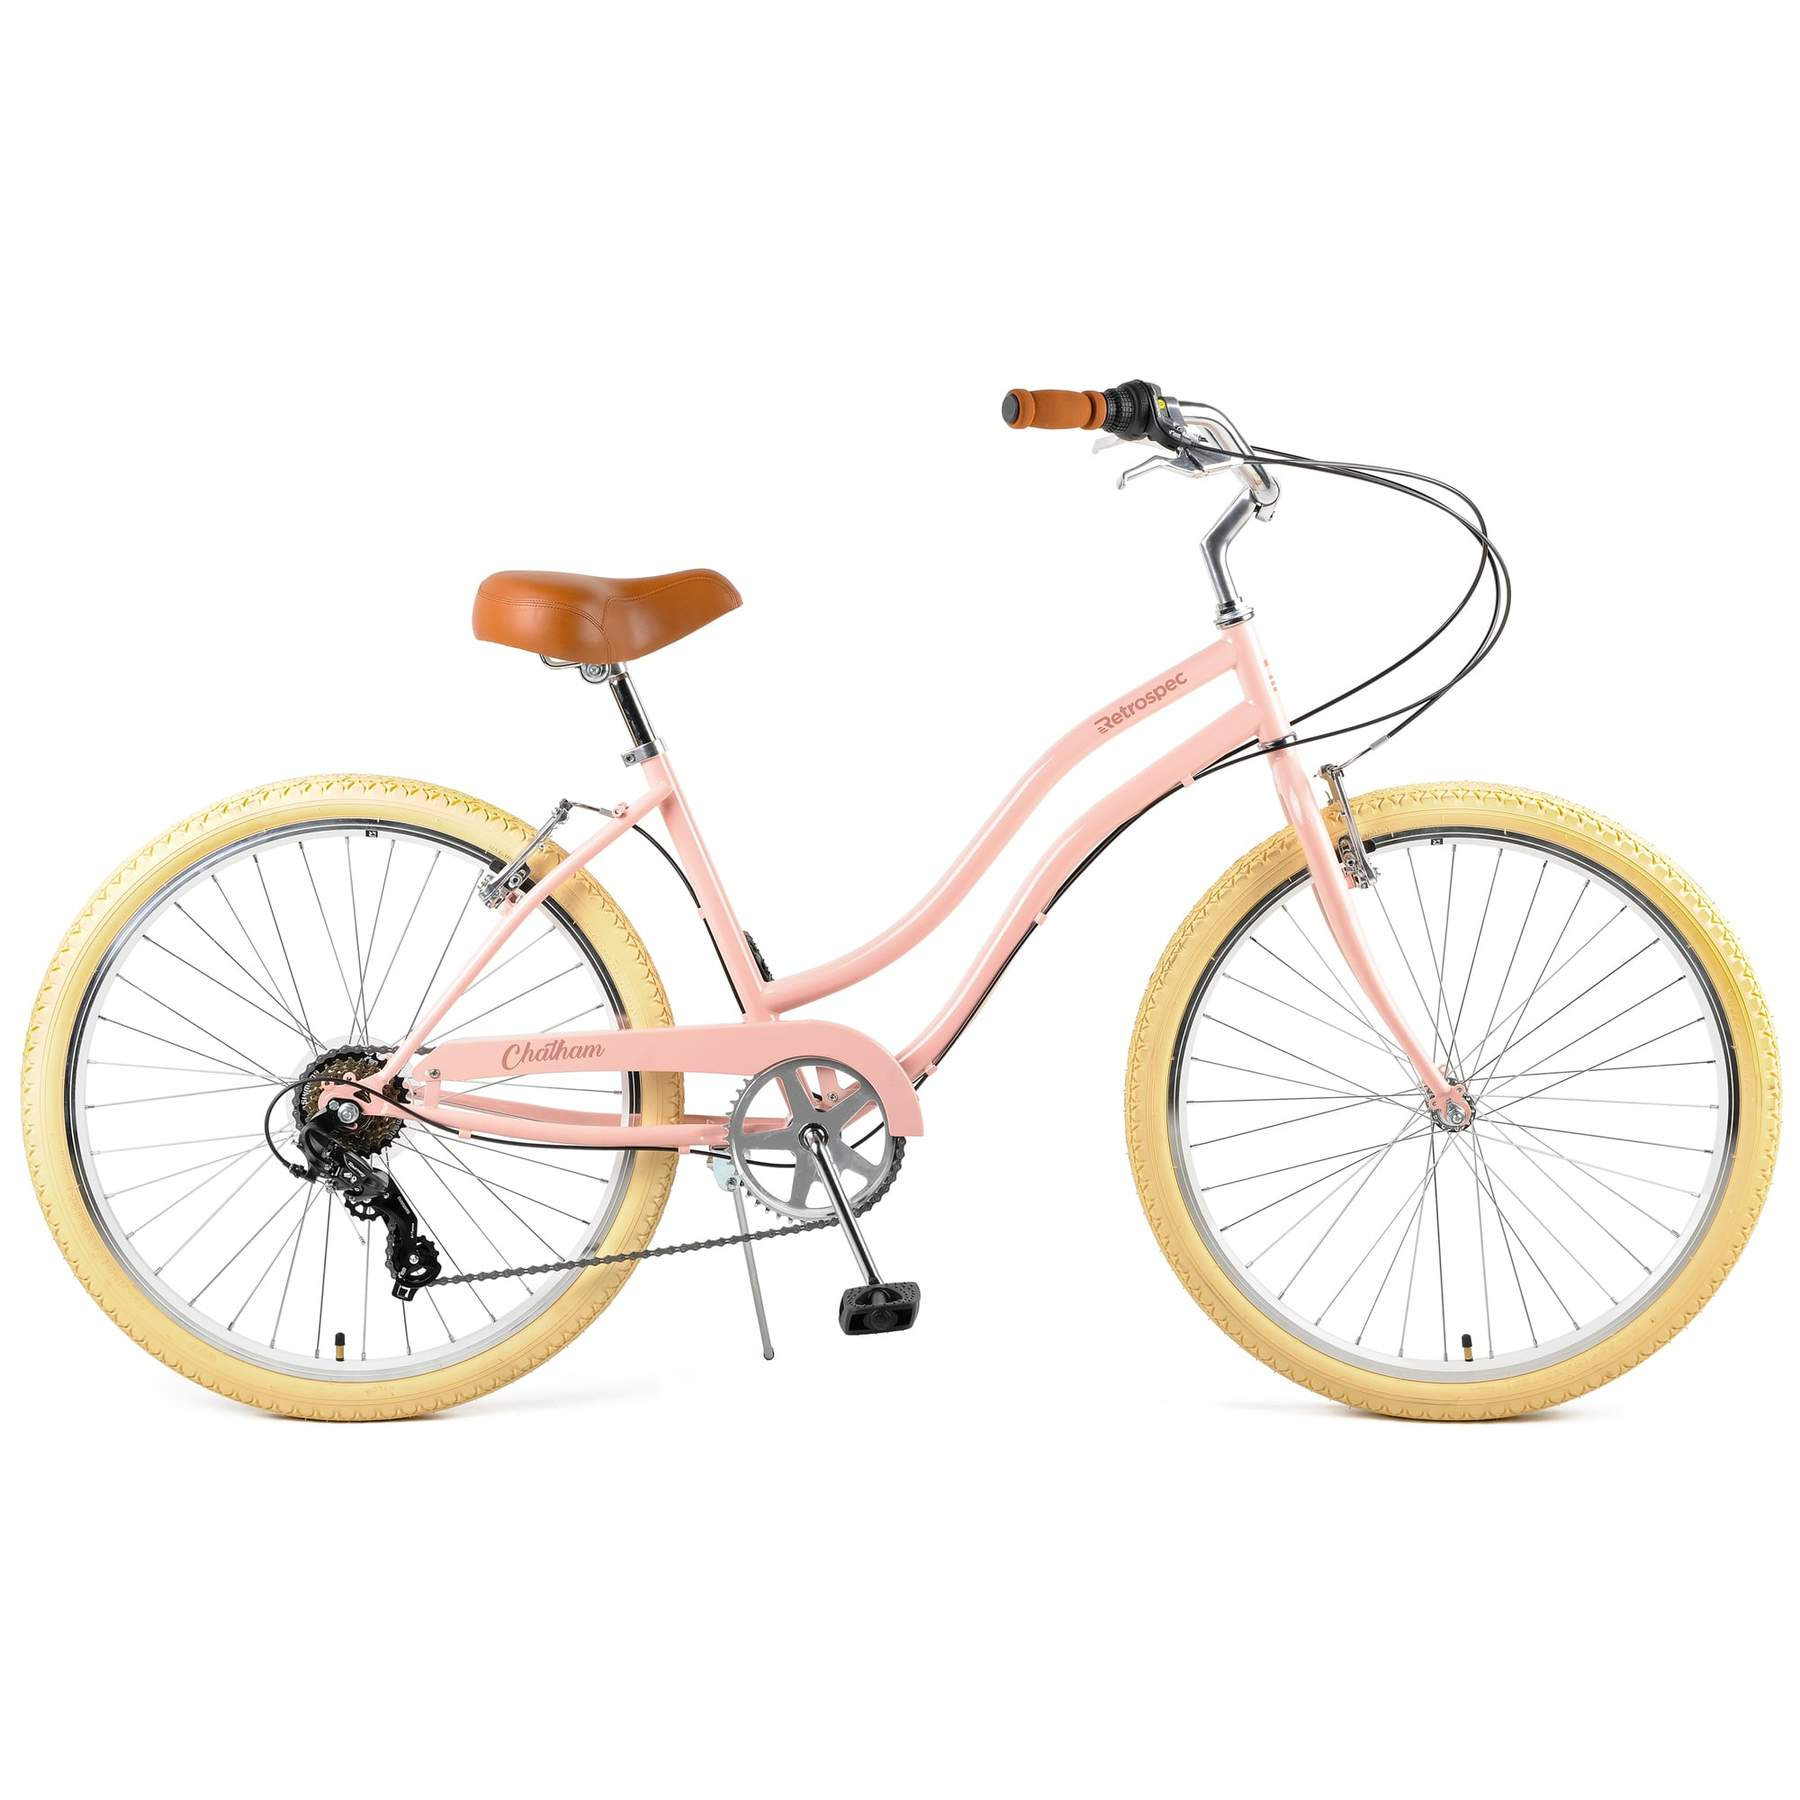 CHATHAM CRUISER 7SPEED Step-Thru - Blush Pink